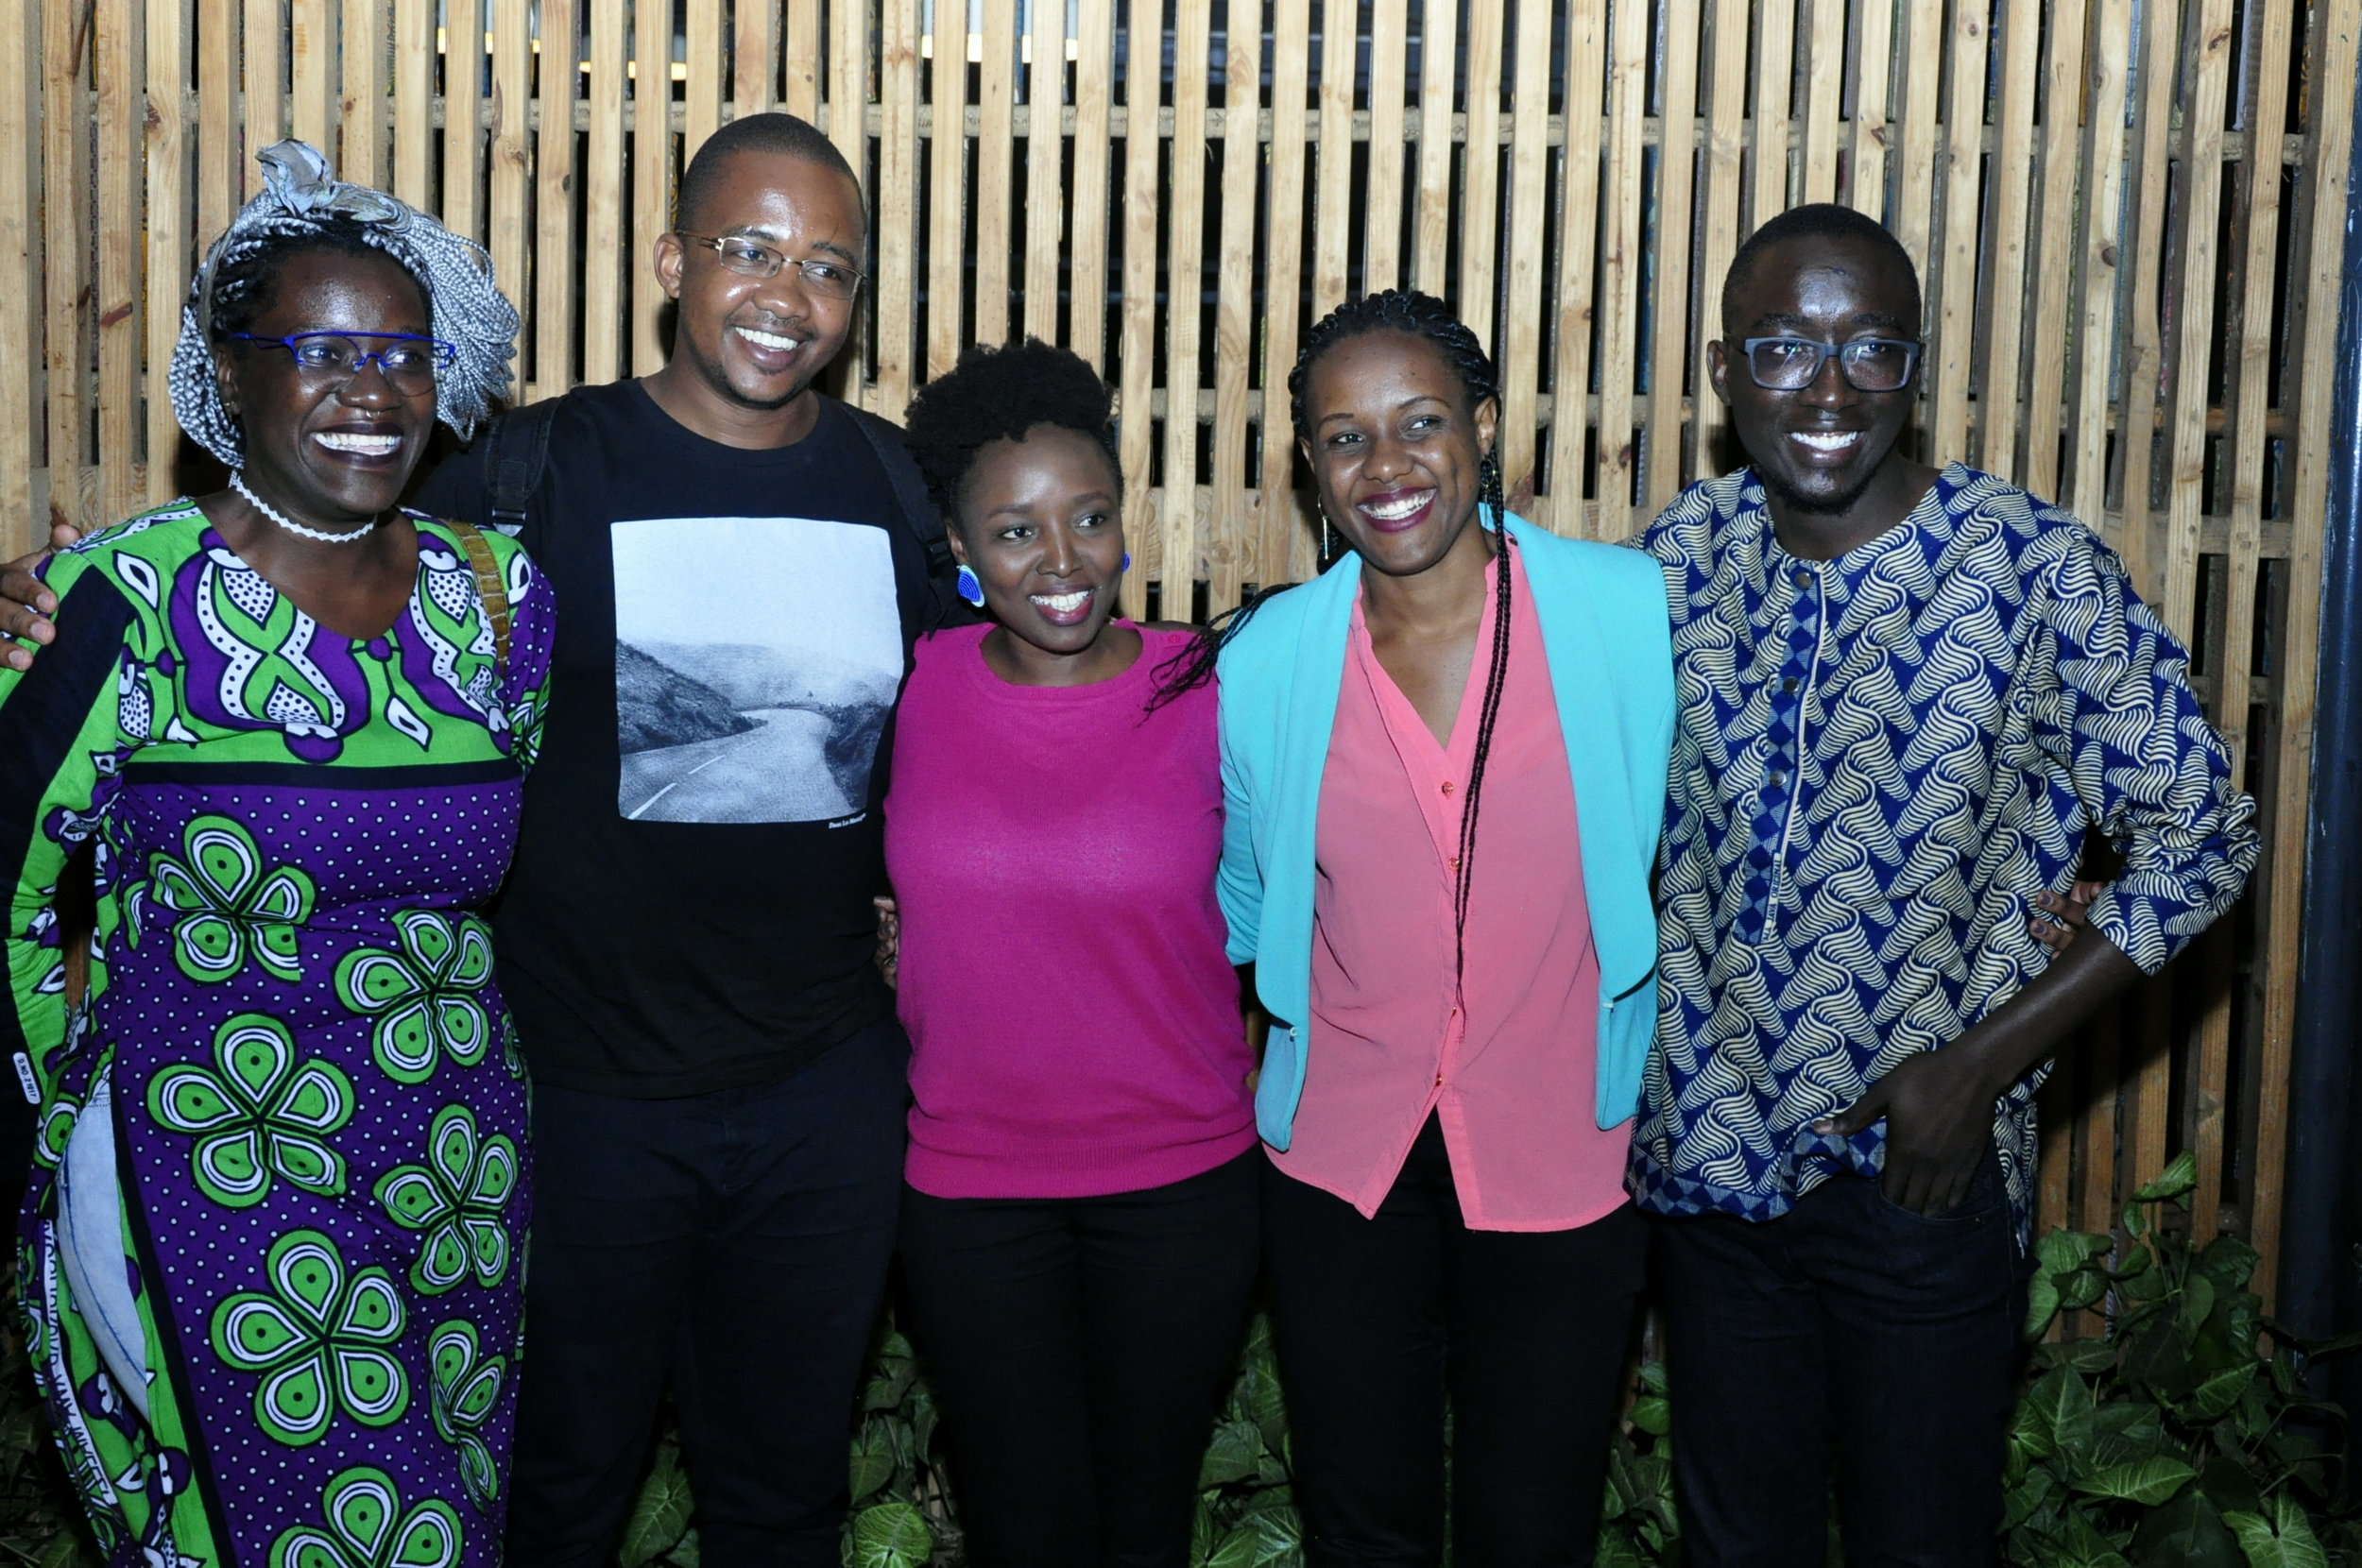 2018 Caine Prize workshop participants Awuor ,   Bongani, Caroline and Troy posing with Louise Umutoni (founder of Huza Press). Image courtesy of Huza Press.